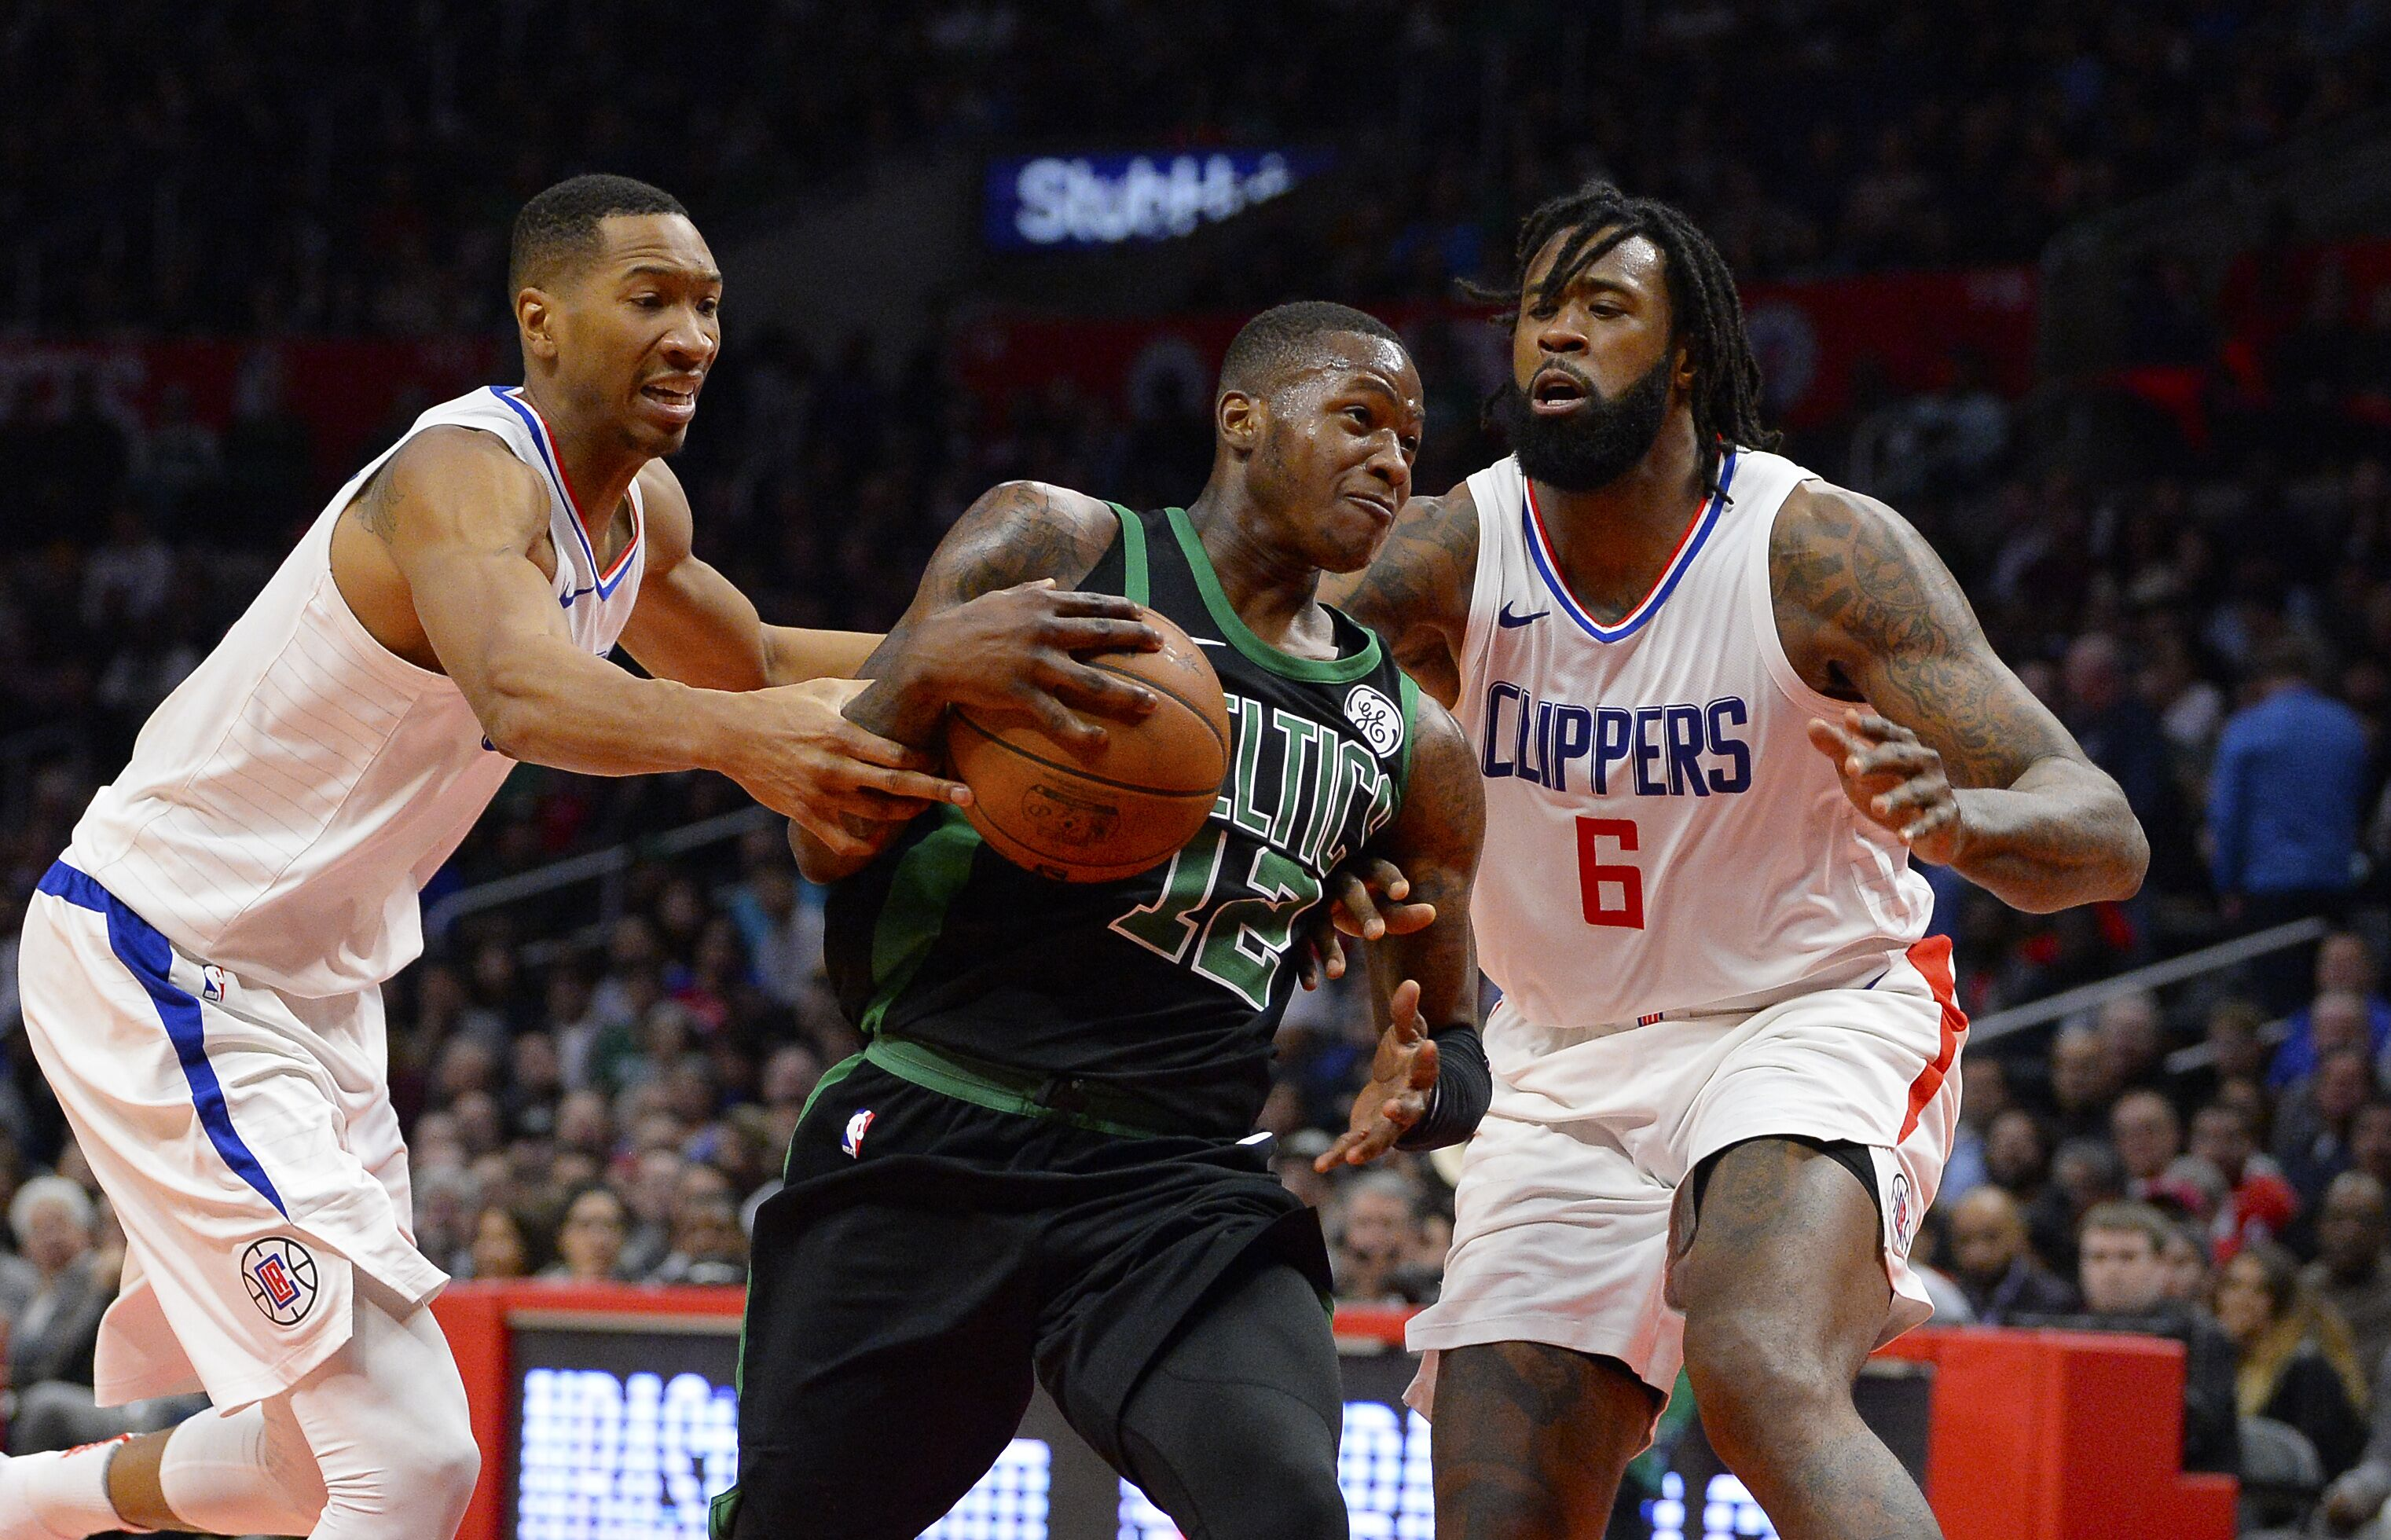 913260800-boston-celtics-v-los-angeles-clippers.jpg